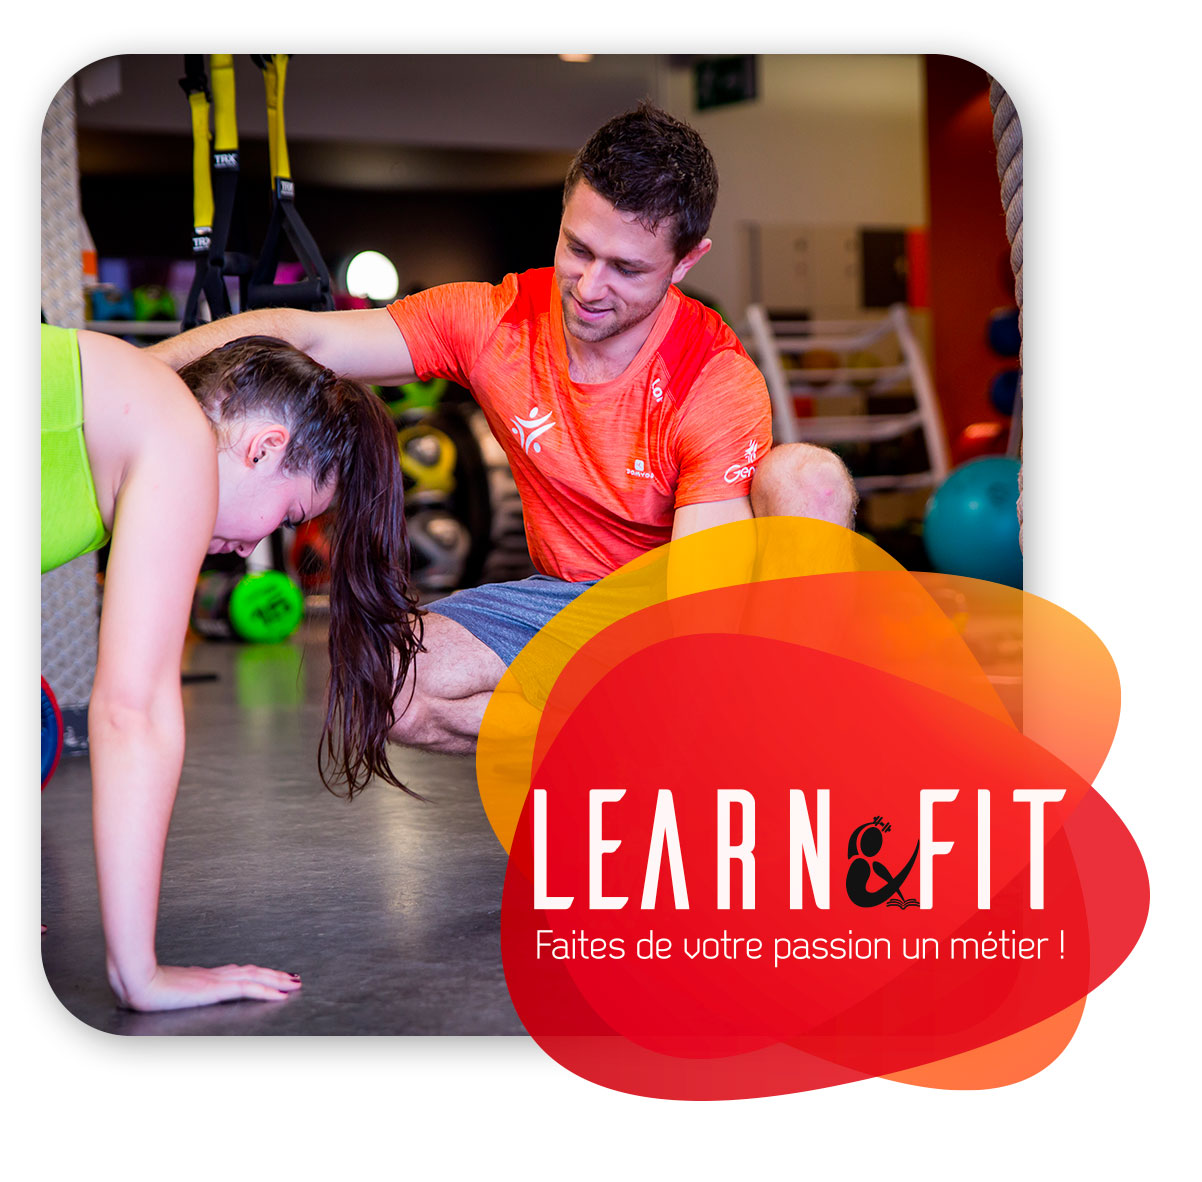 Learn&fit